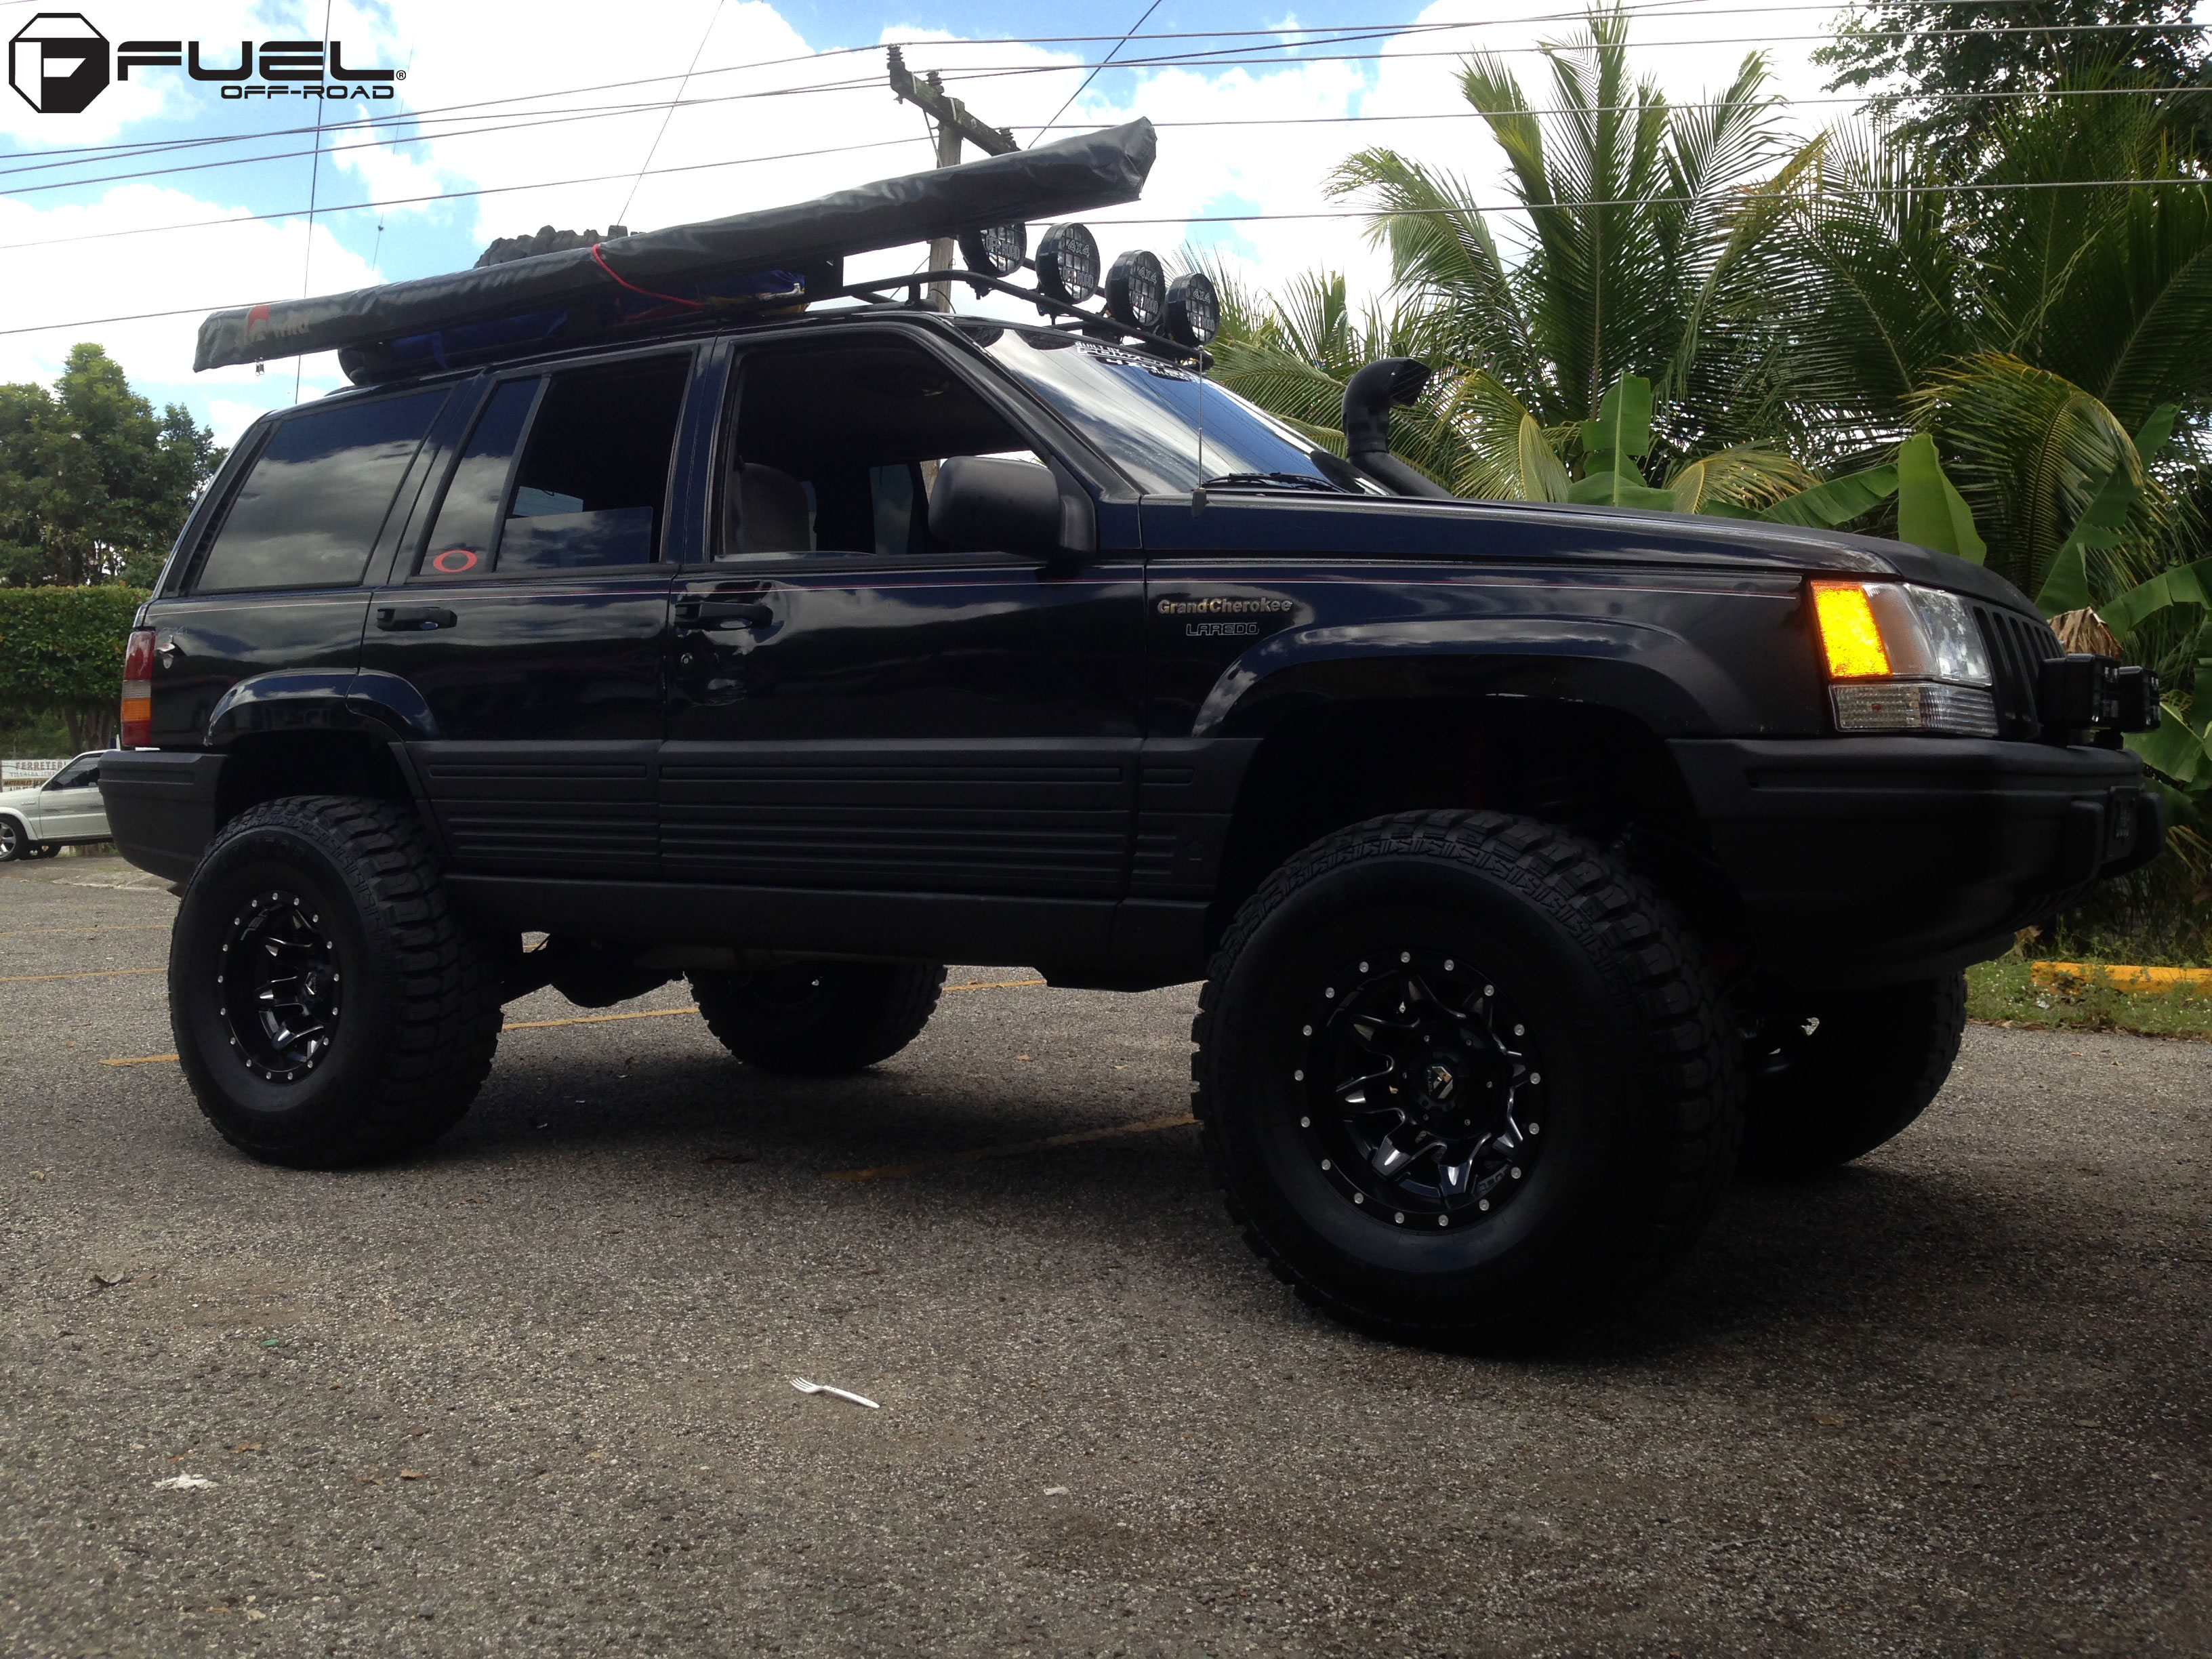 jeep grand cherokee lethal d567 gallery fuel off road. Black Bedroom Furniture Sets. Home Design Ideas